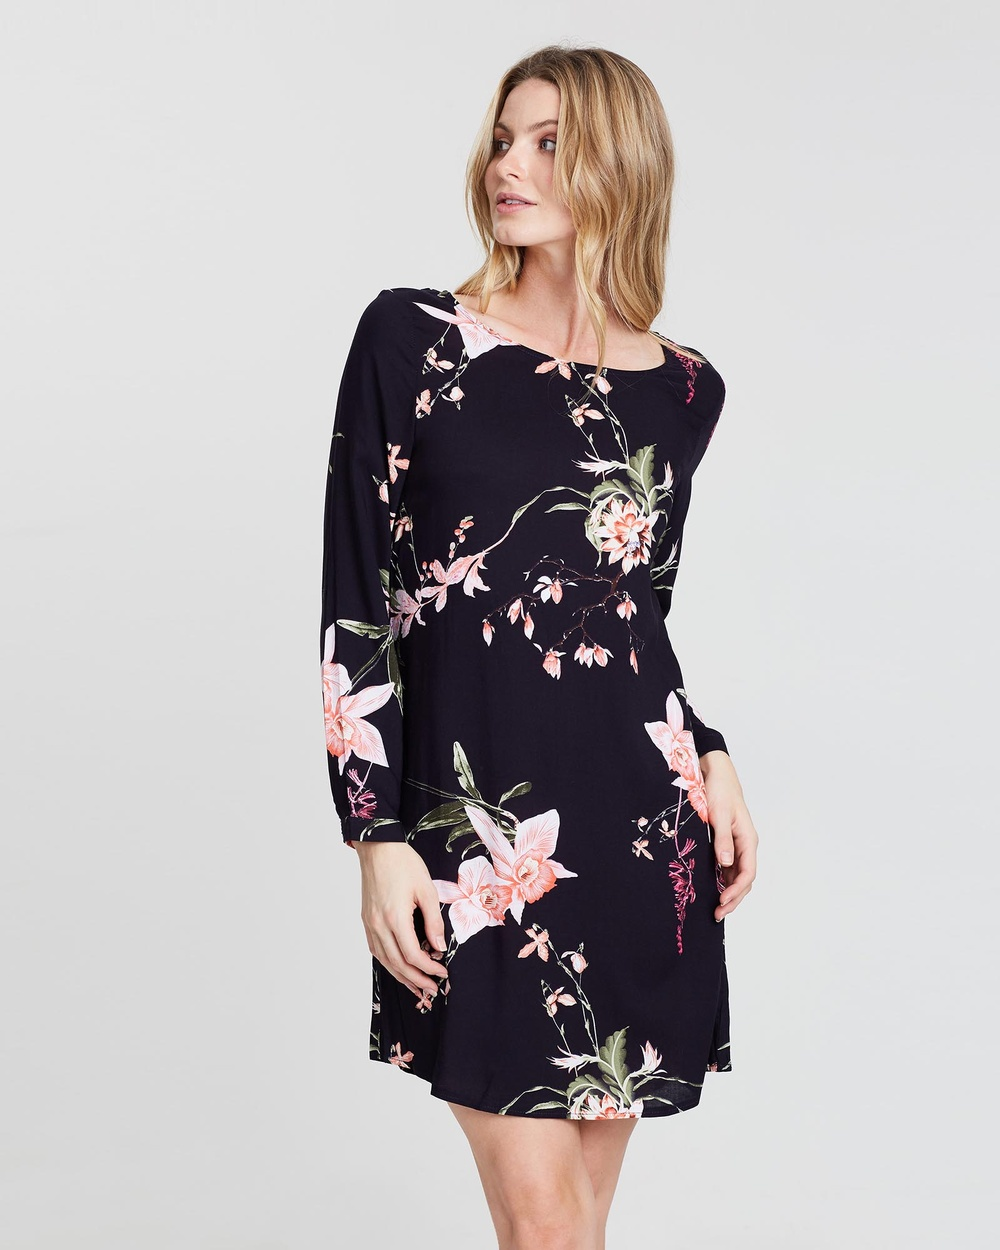 St. Frock Navy Mishka Dress